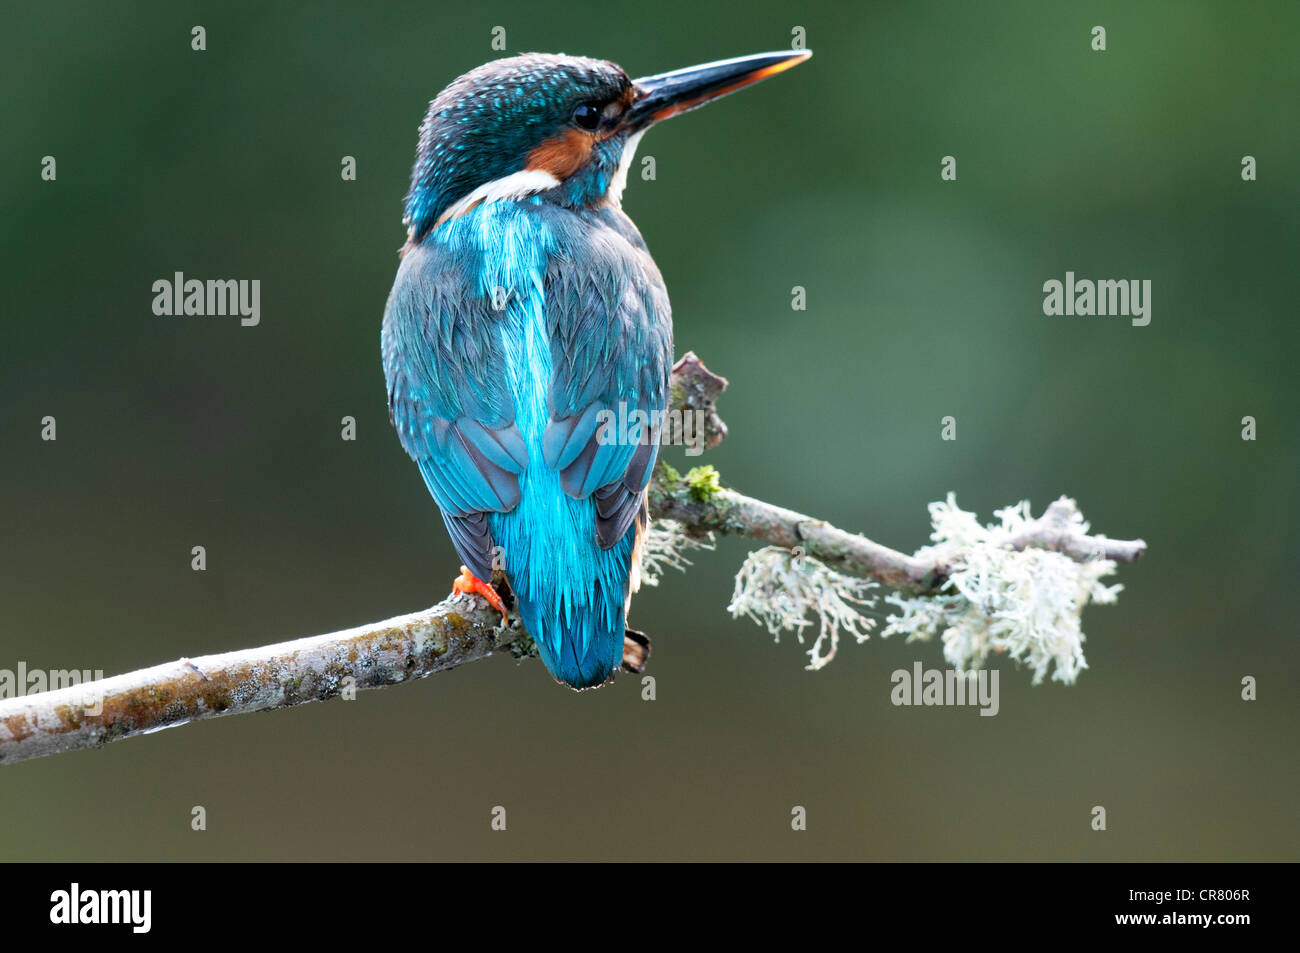 female kingfisher standing on a twig looking right - Stock Image